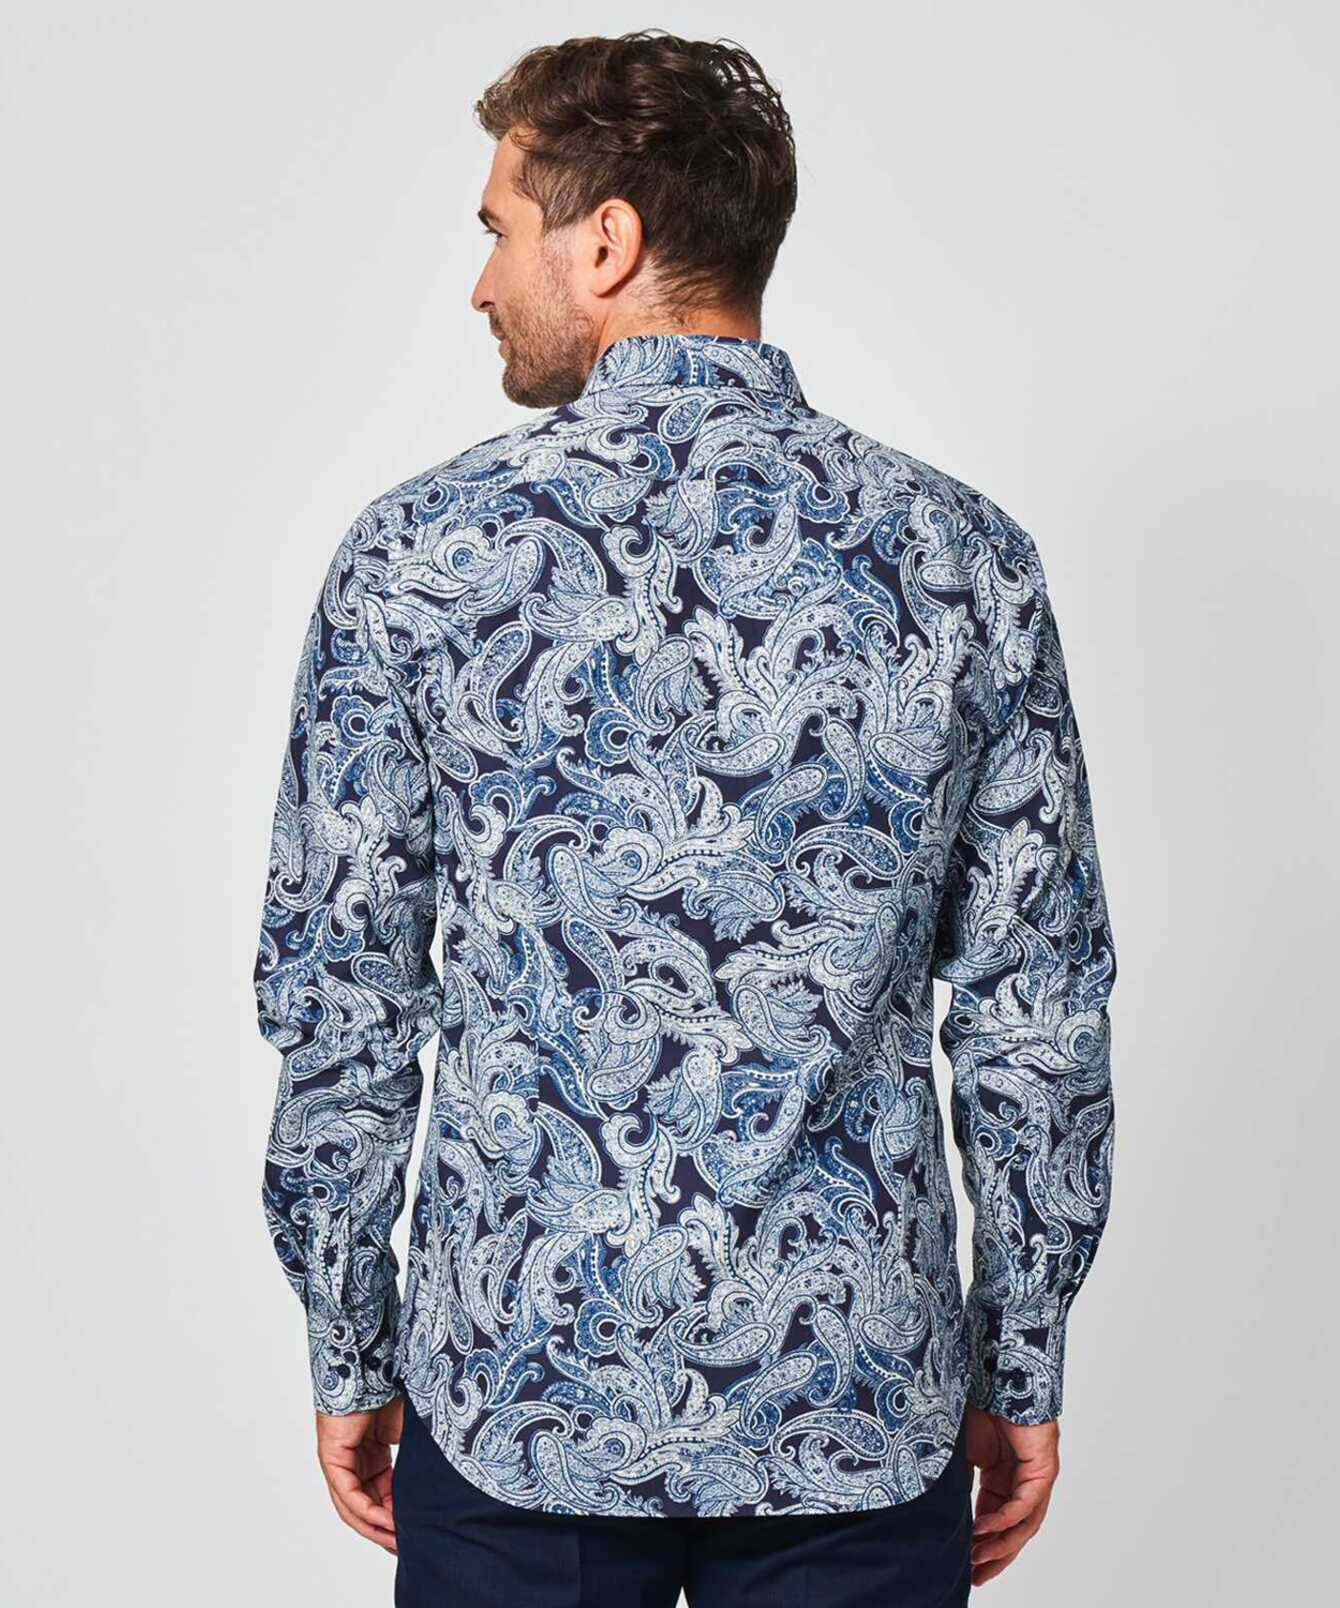 Shirt Paisley Blå The Shirt Factory